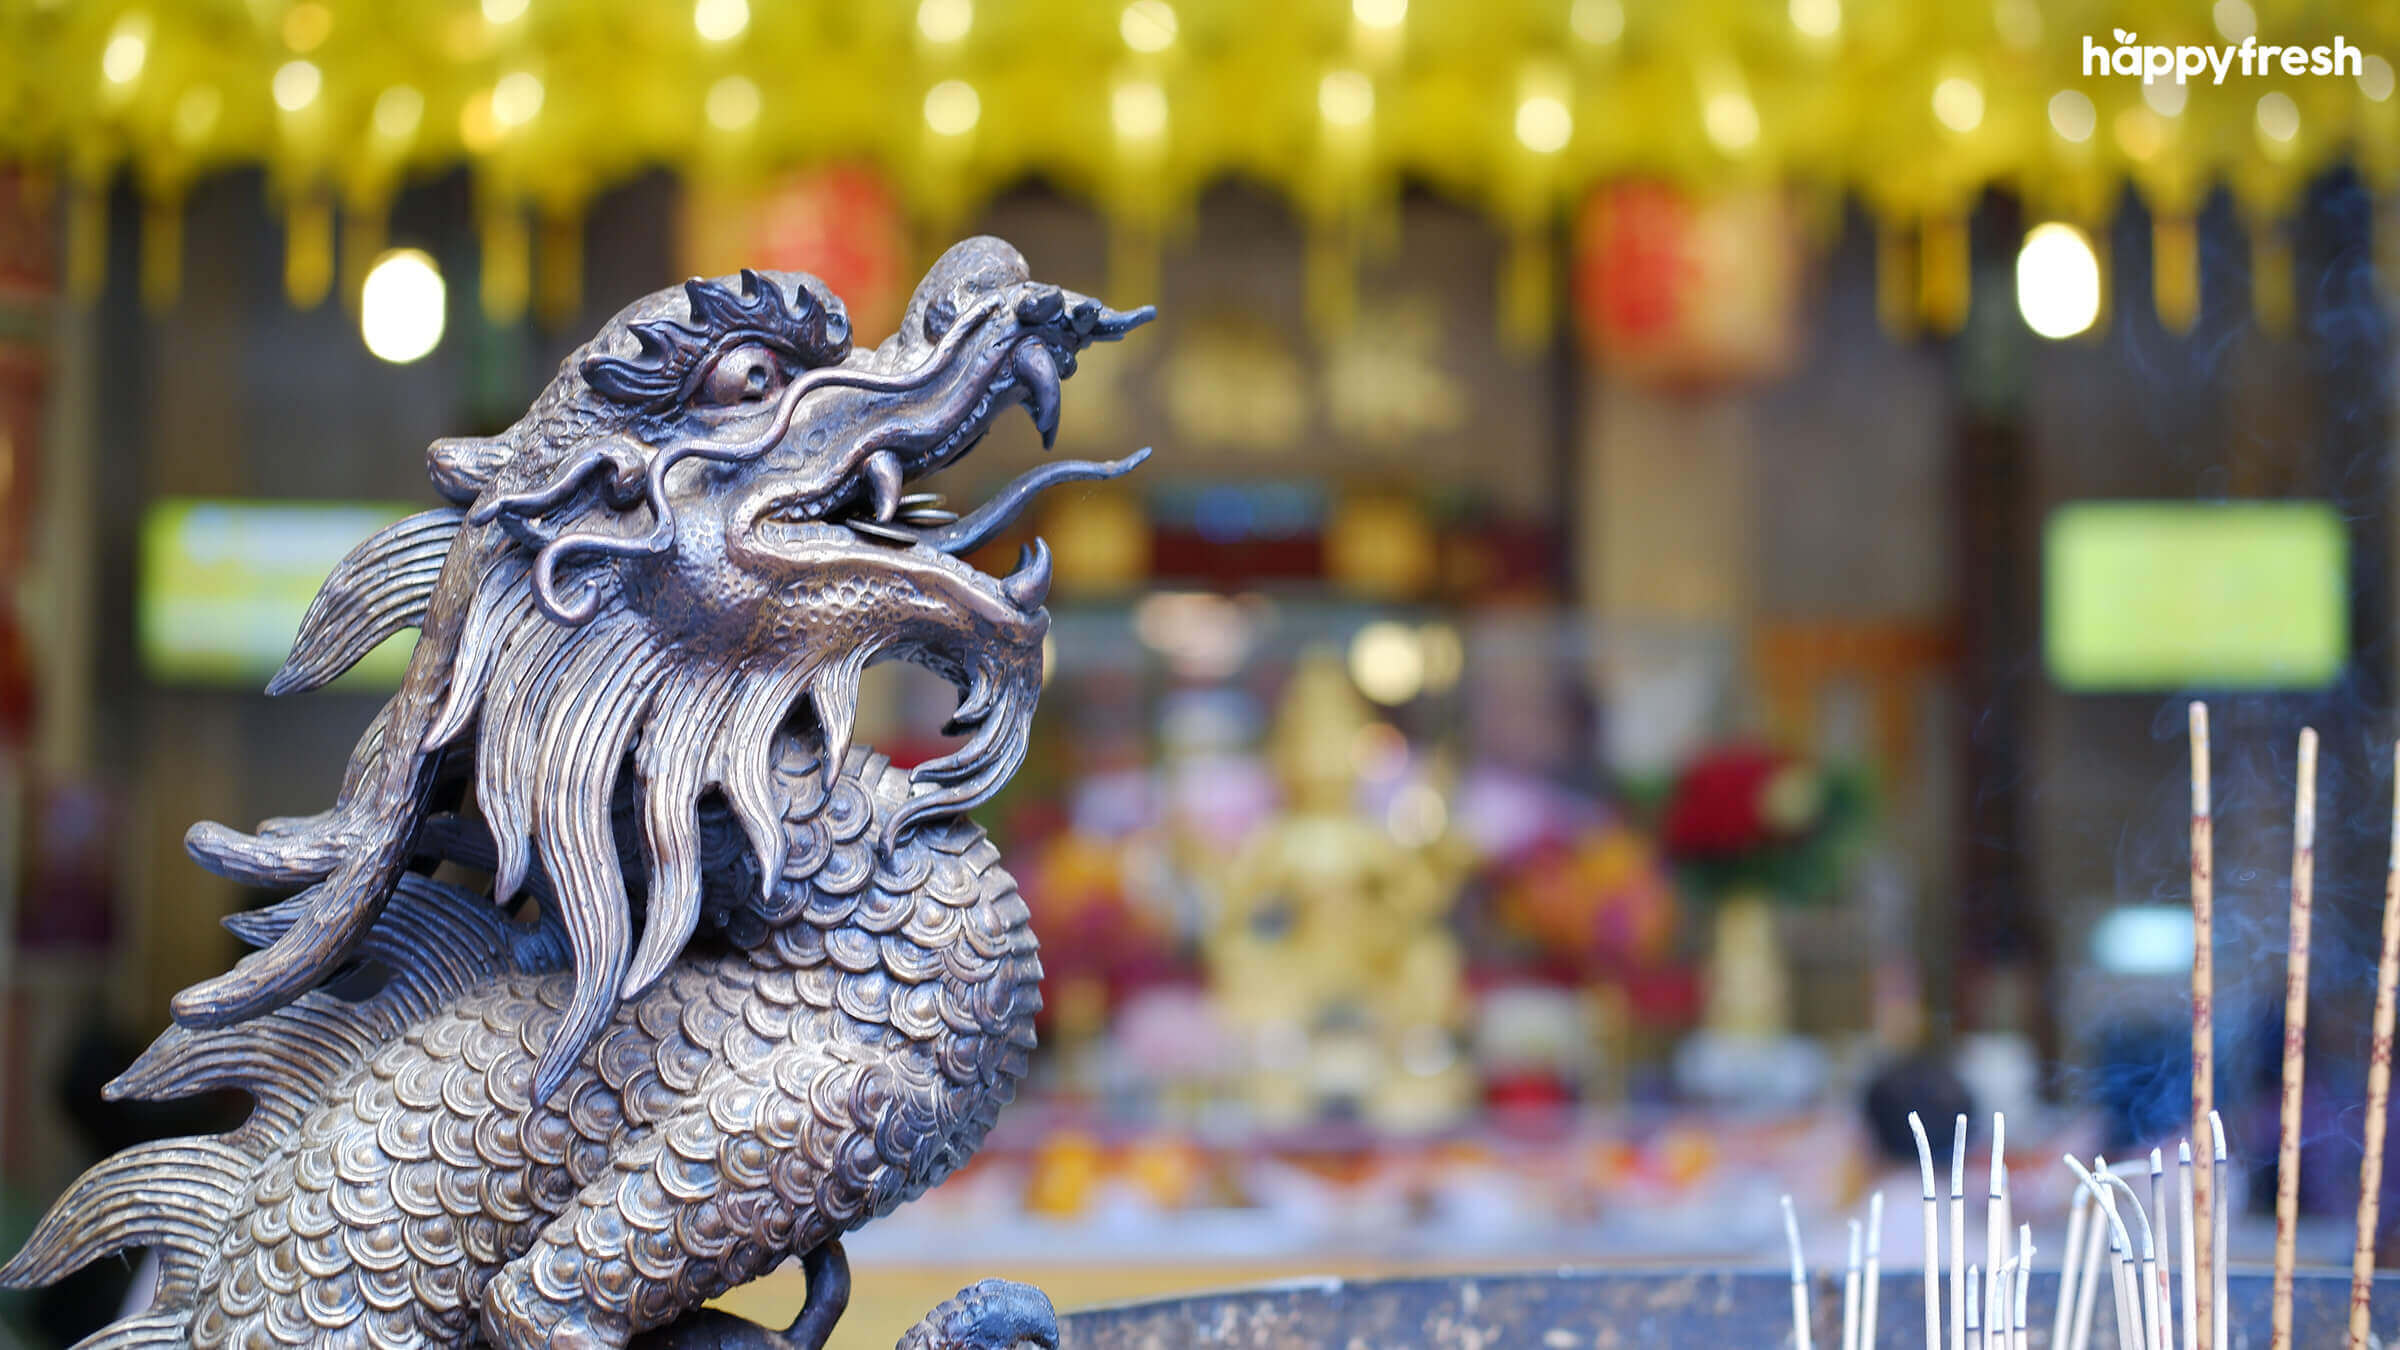 HappyFresh_Visit_6_Chinese_Shrines_In_Chinatown_Tai_Hong_Kong_Shrine_4